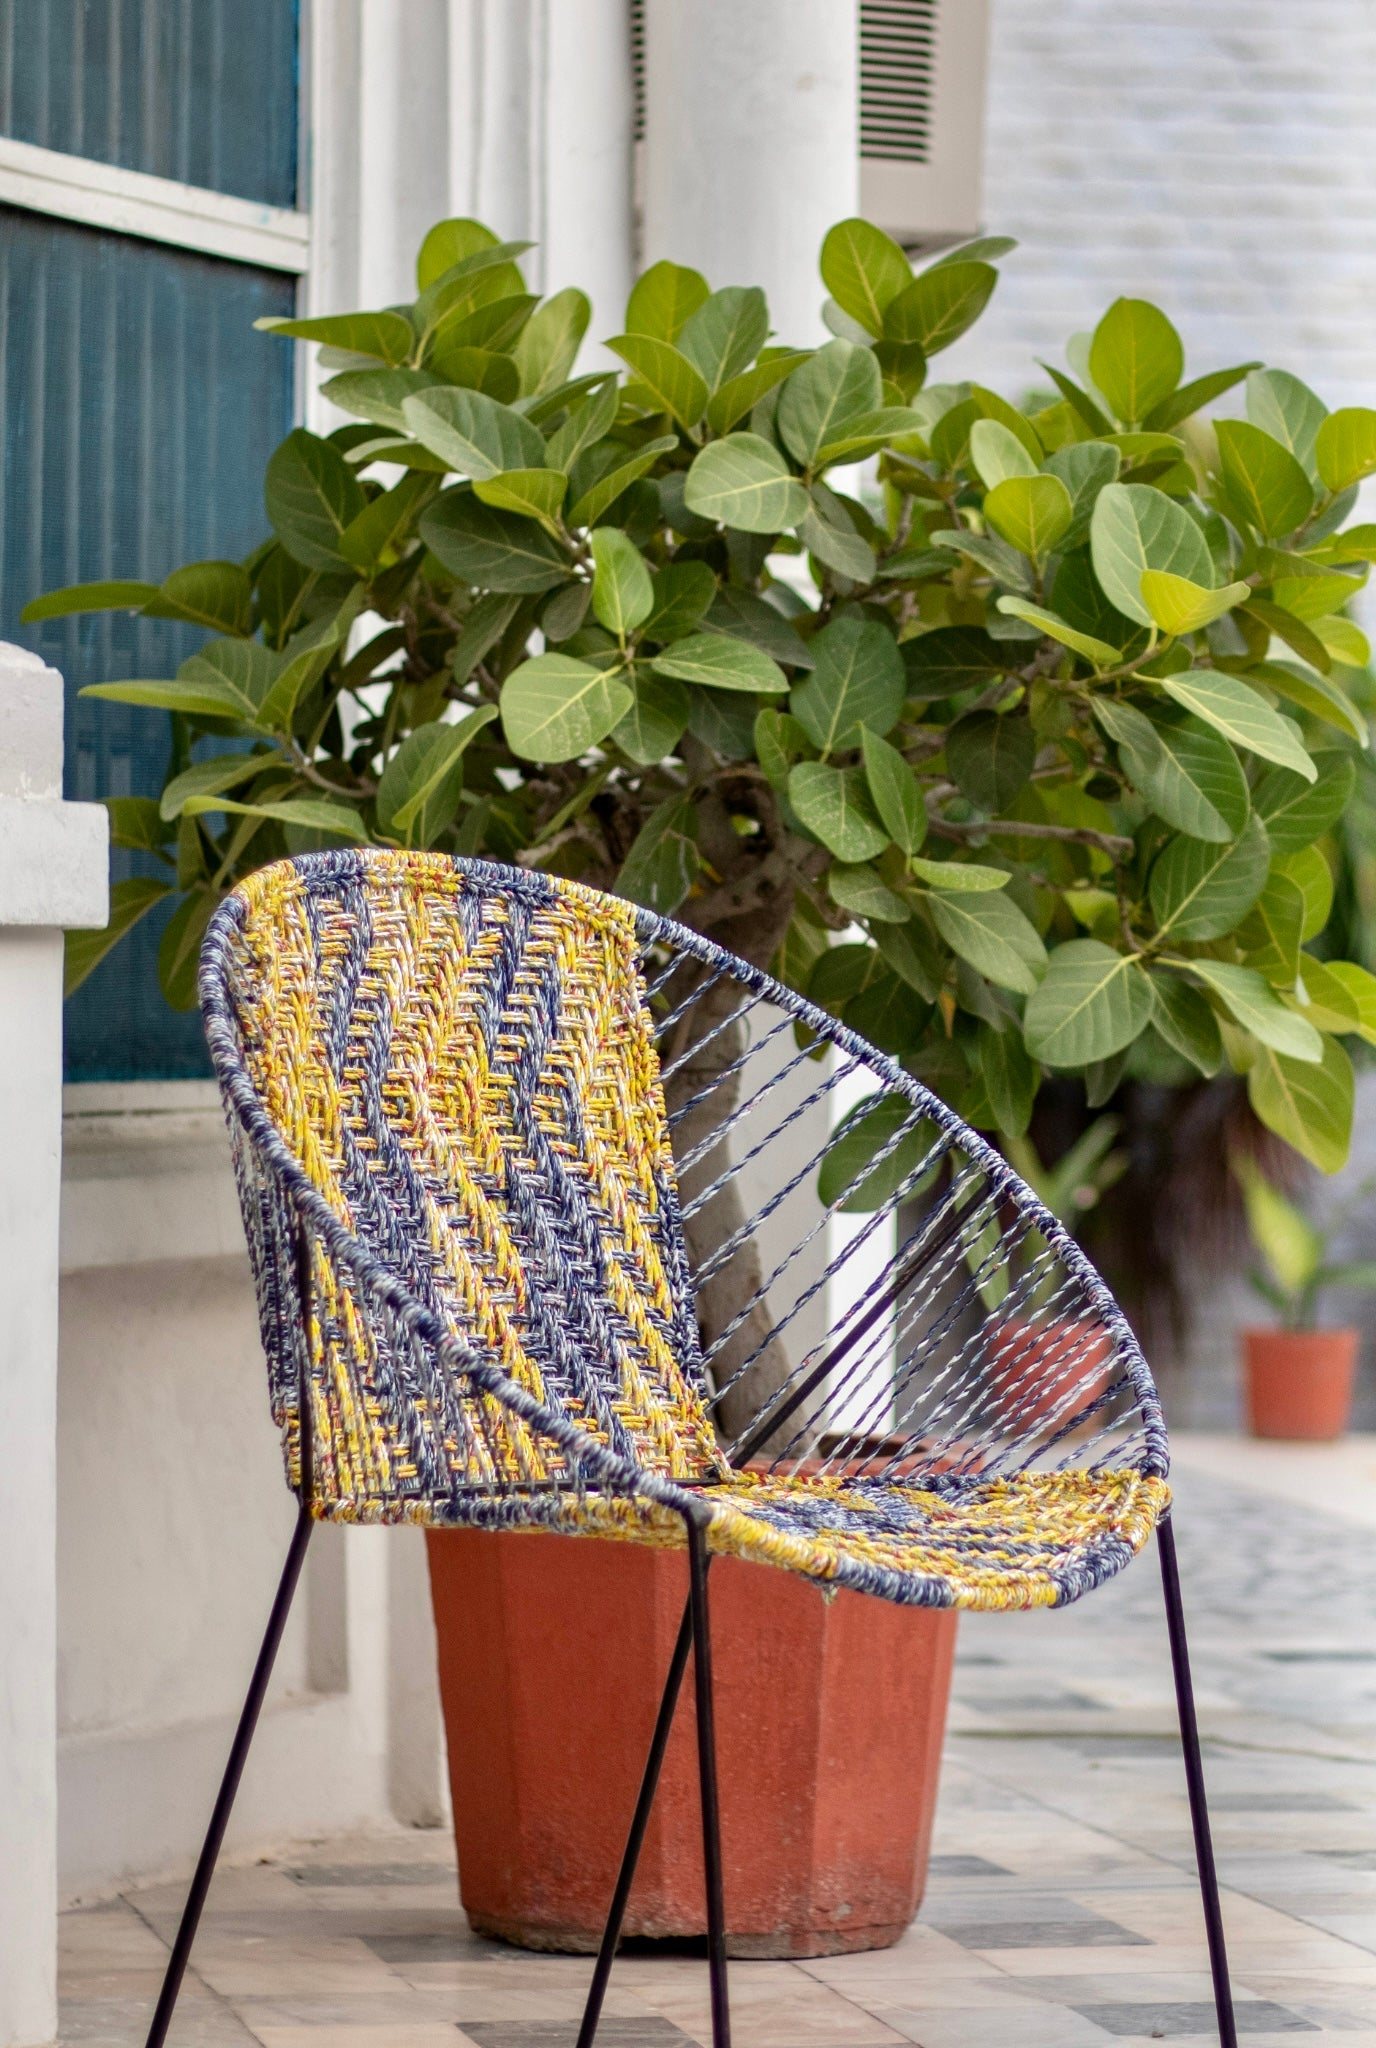 MARNI CHAIR - SIROHI